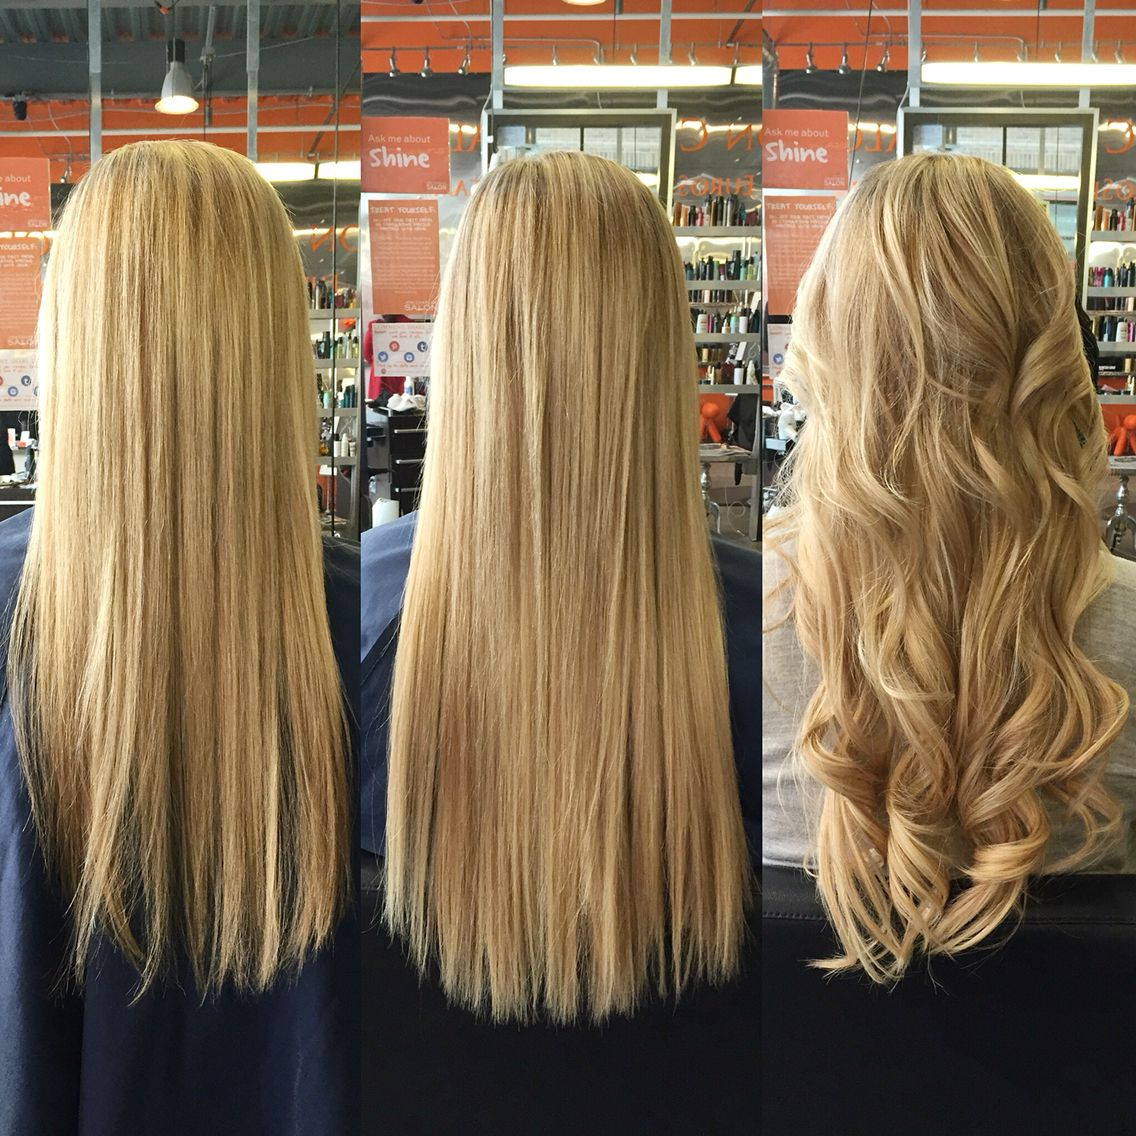 Before After And Curled Bombshell Tape In Extensions Hair We Do